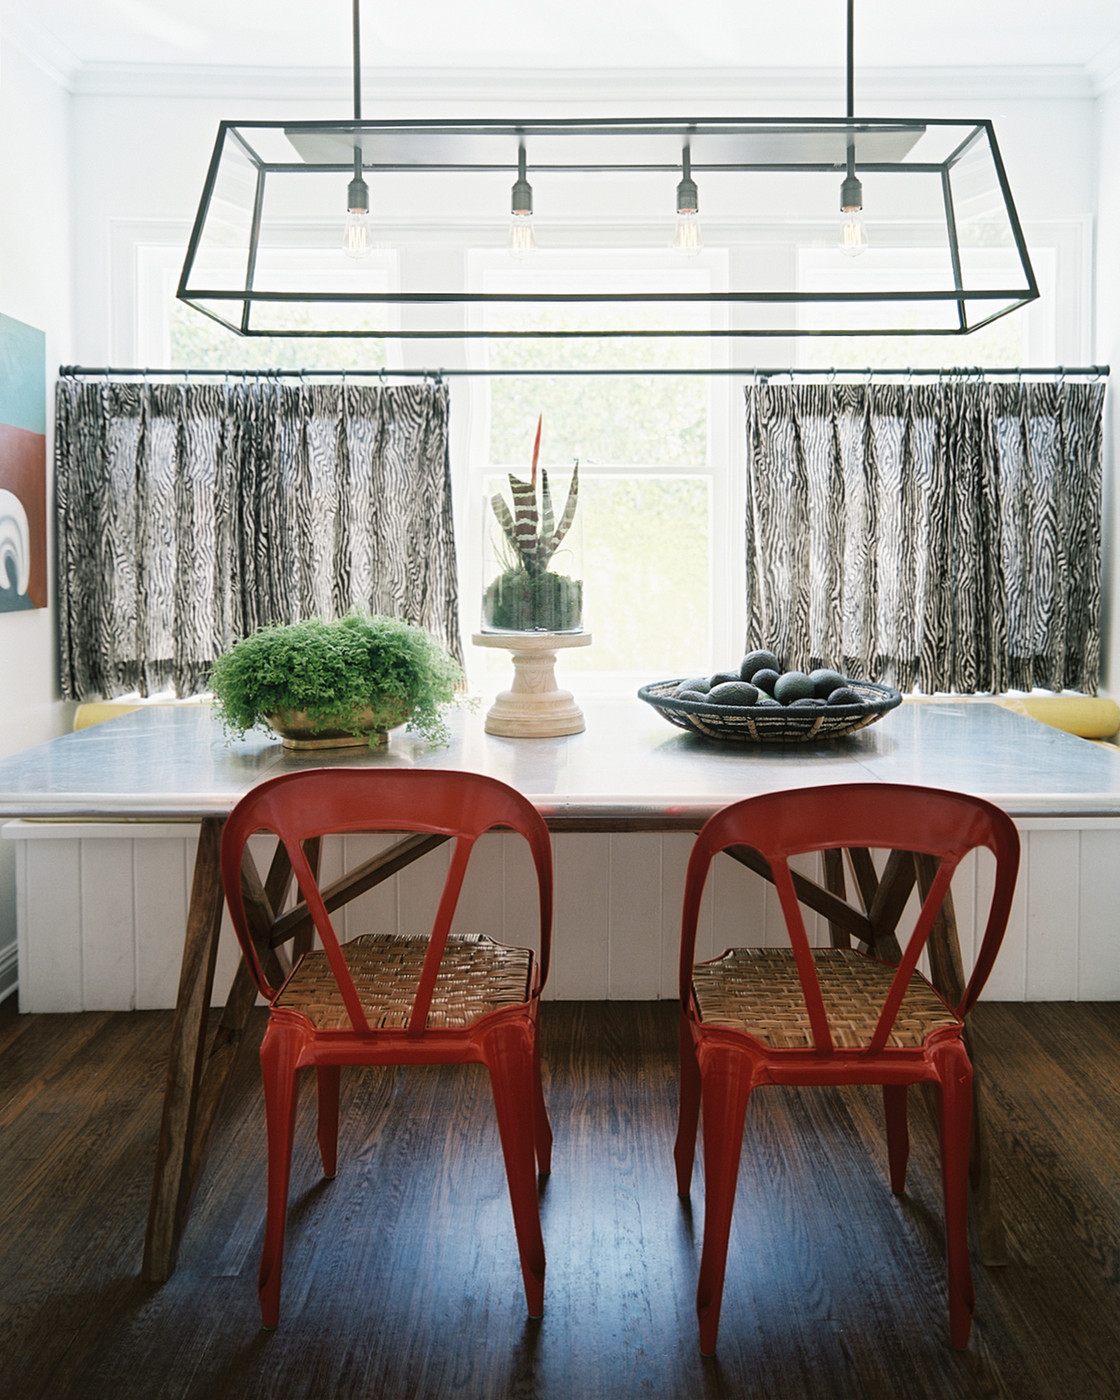 Cafe Curtains Photos, Design, Ideas, Remodel, And Decor